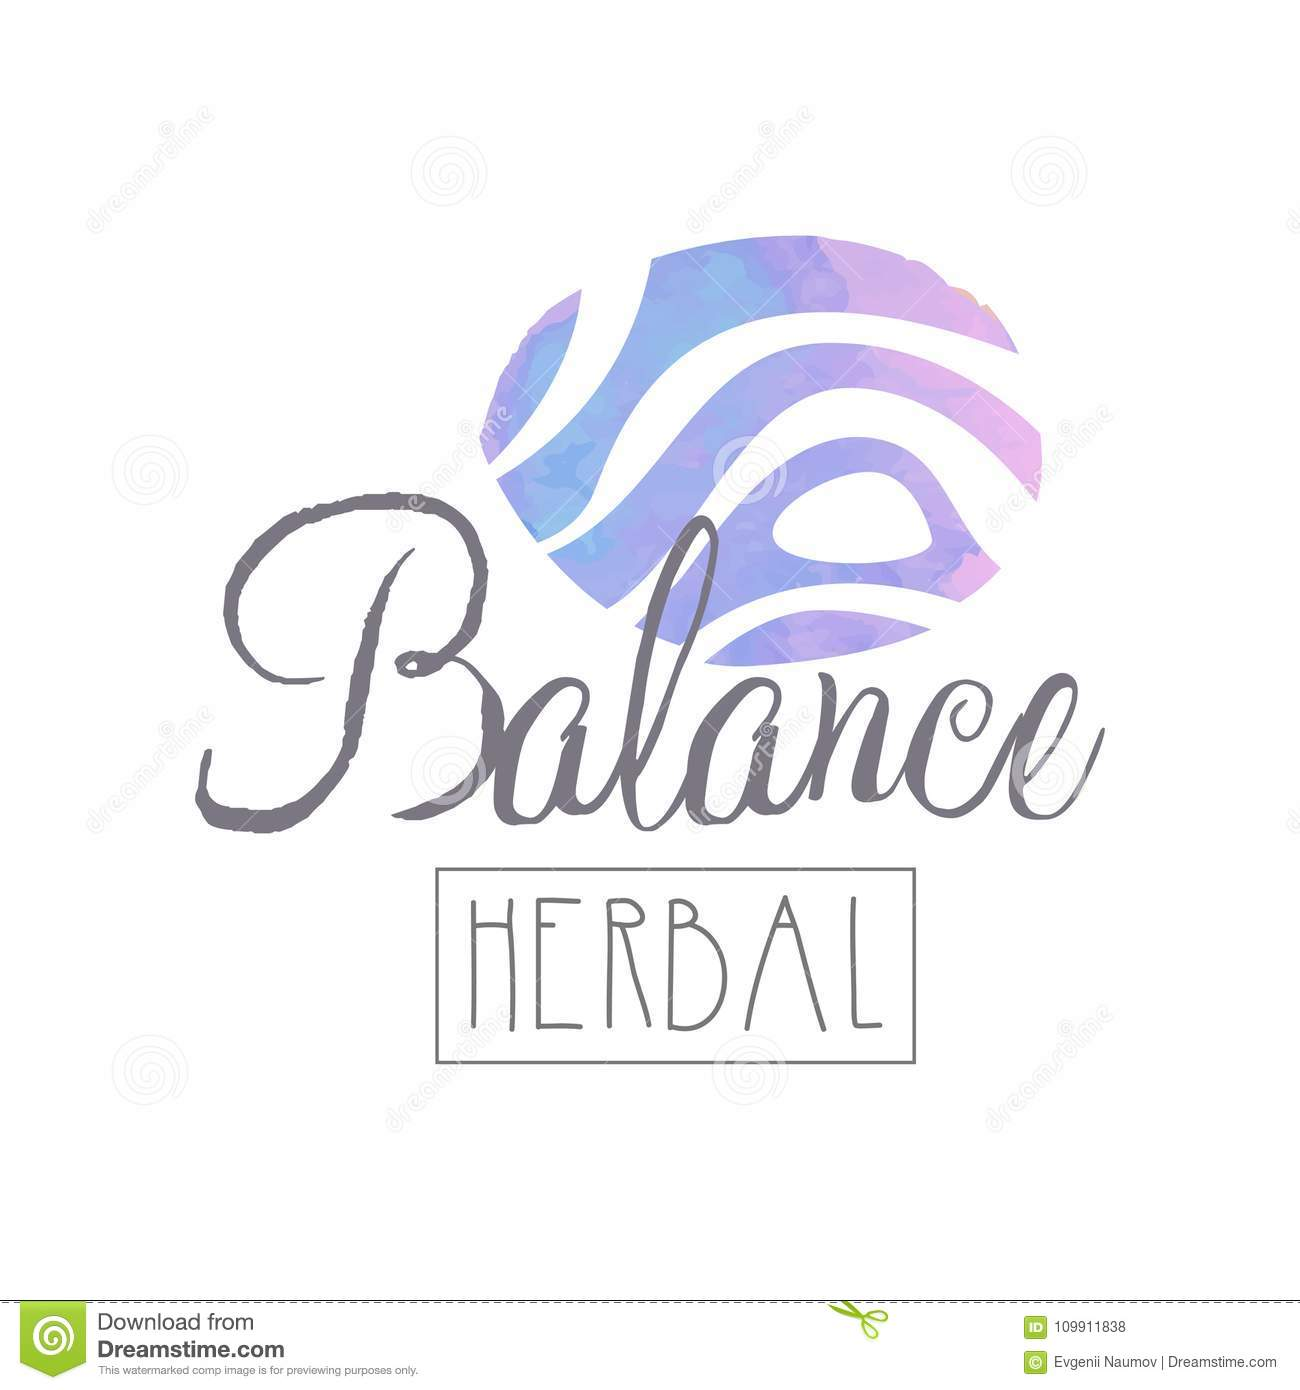 abstract logo for self development center or yoga class wellness